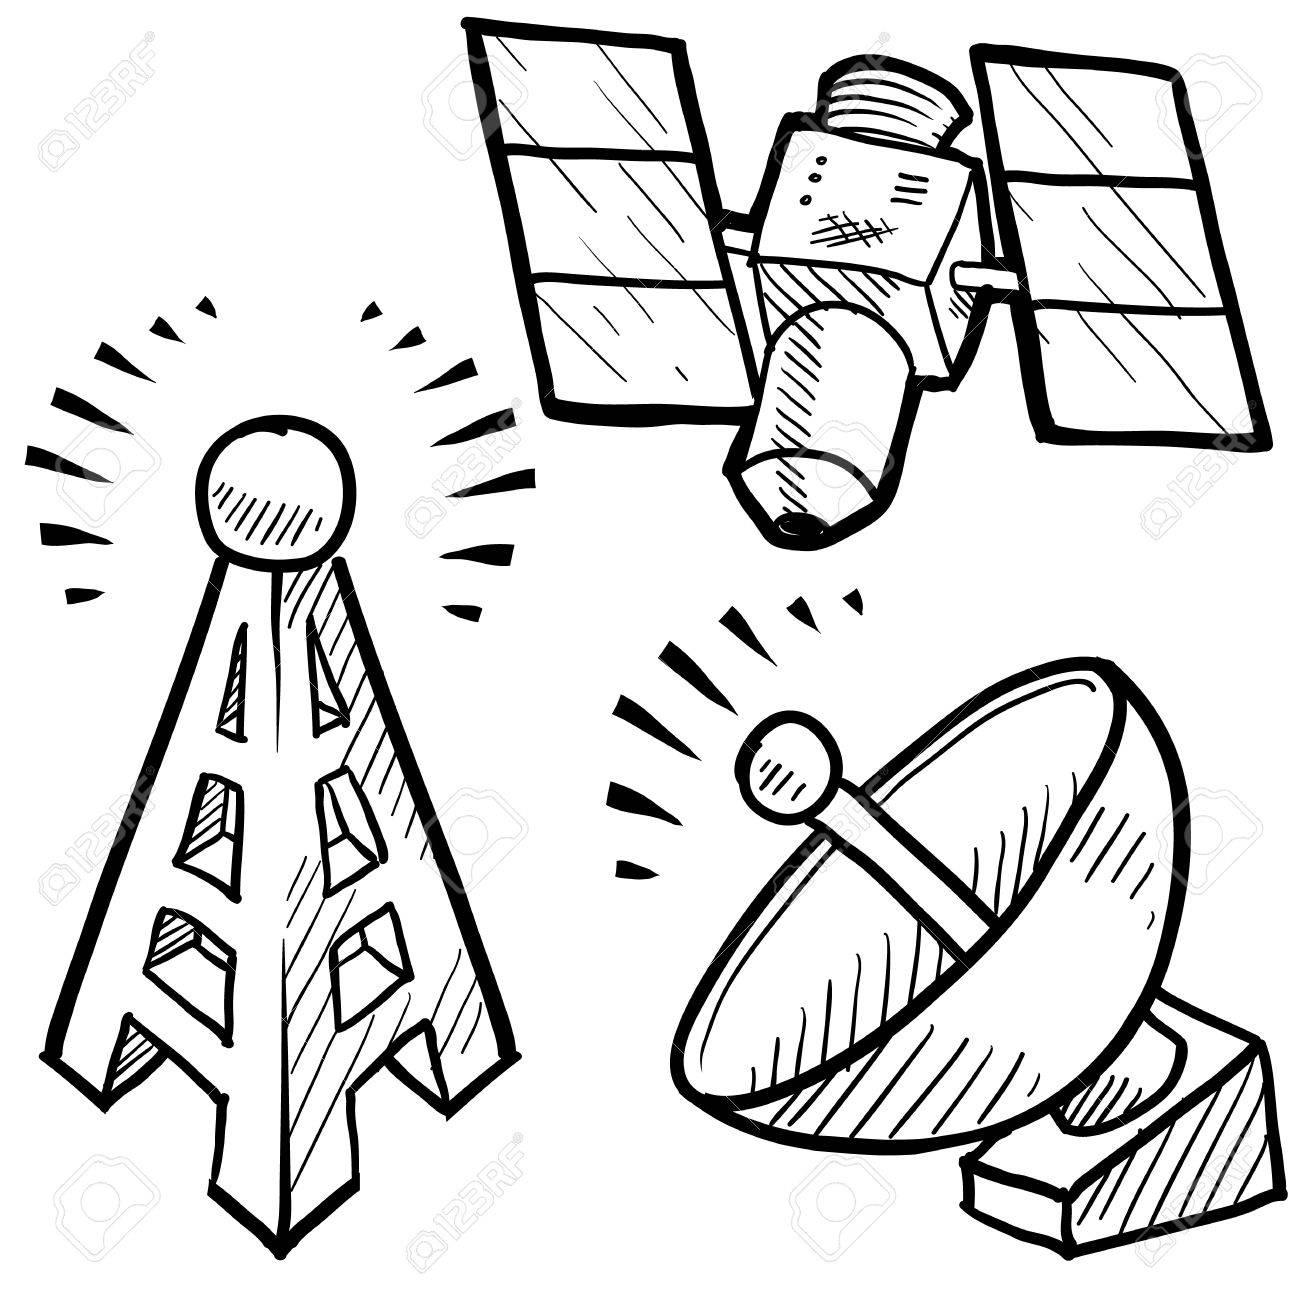 1299x1300 Doodle Style Telecommunications Sketch In Vector Format Set